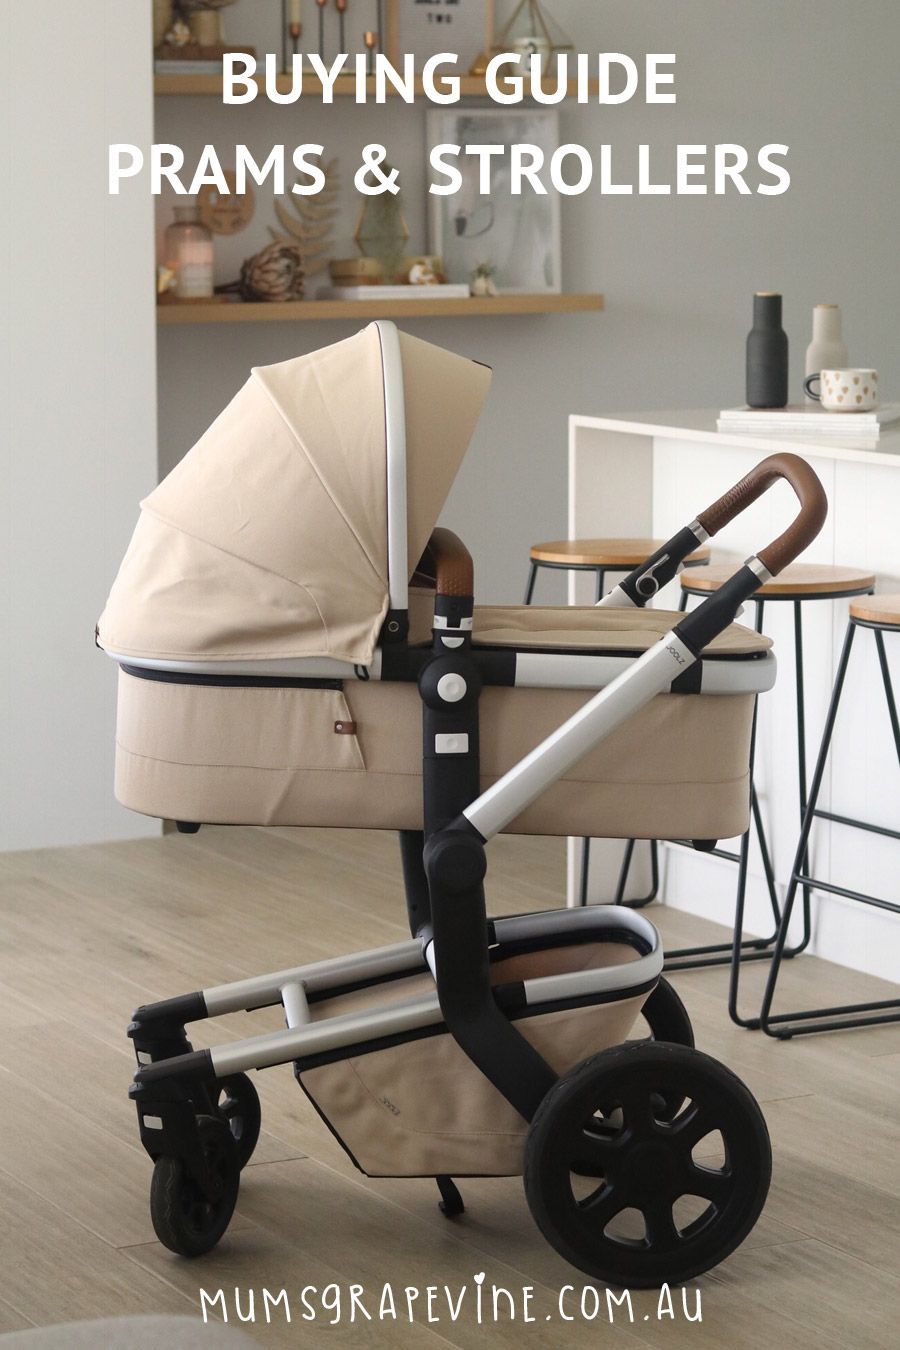 Everything you need to know about buying a pram or